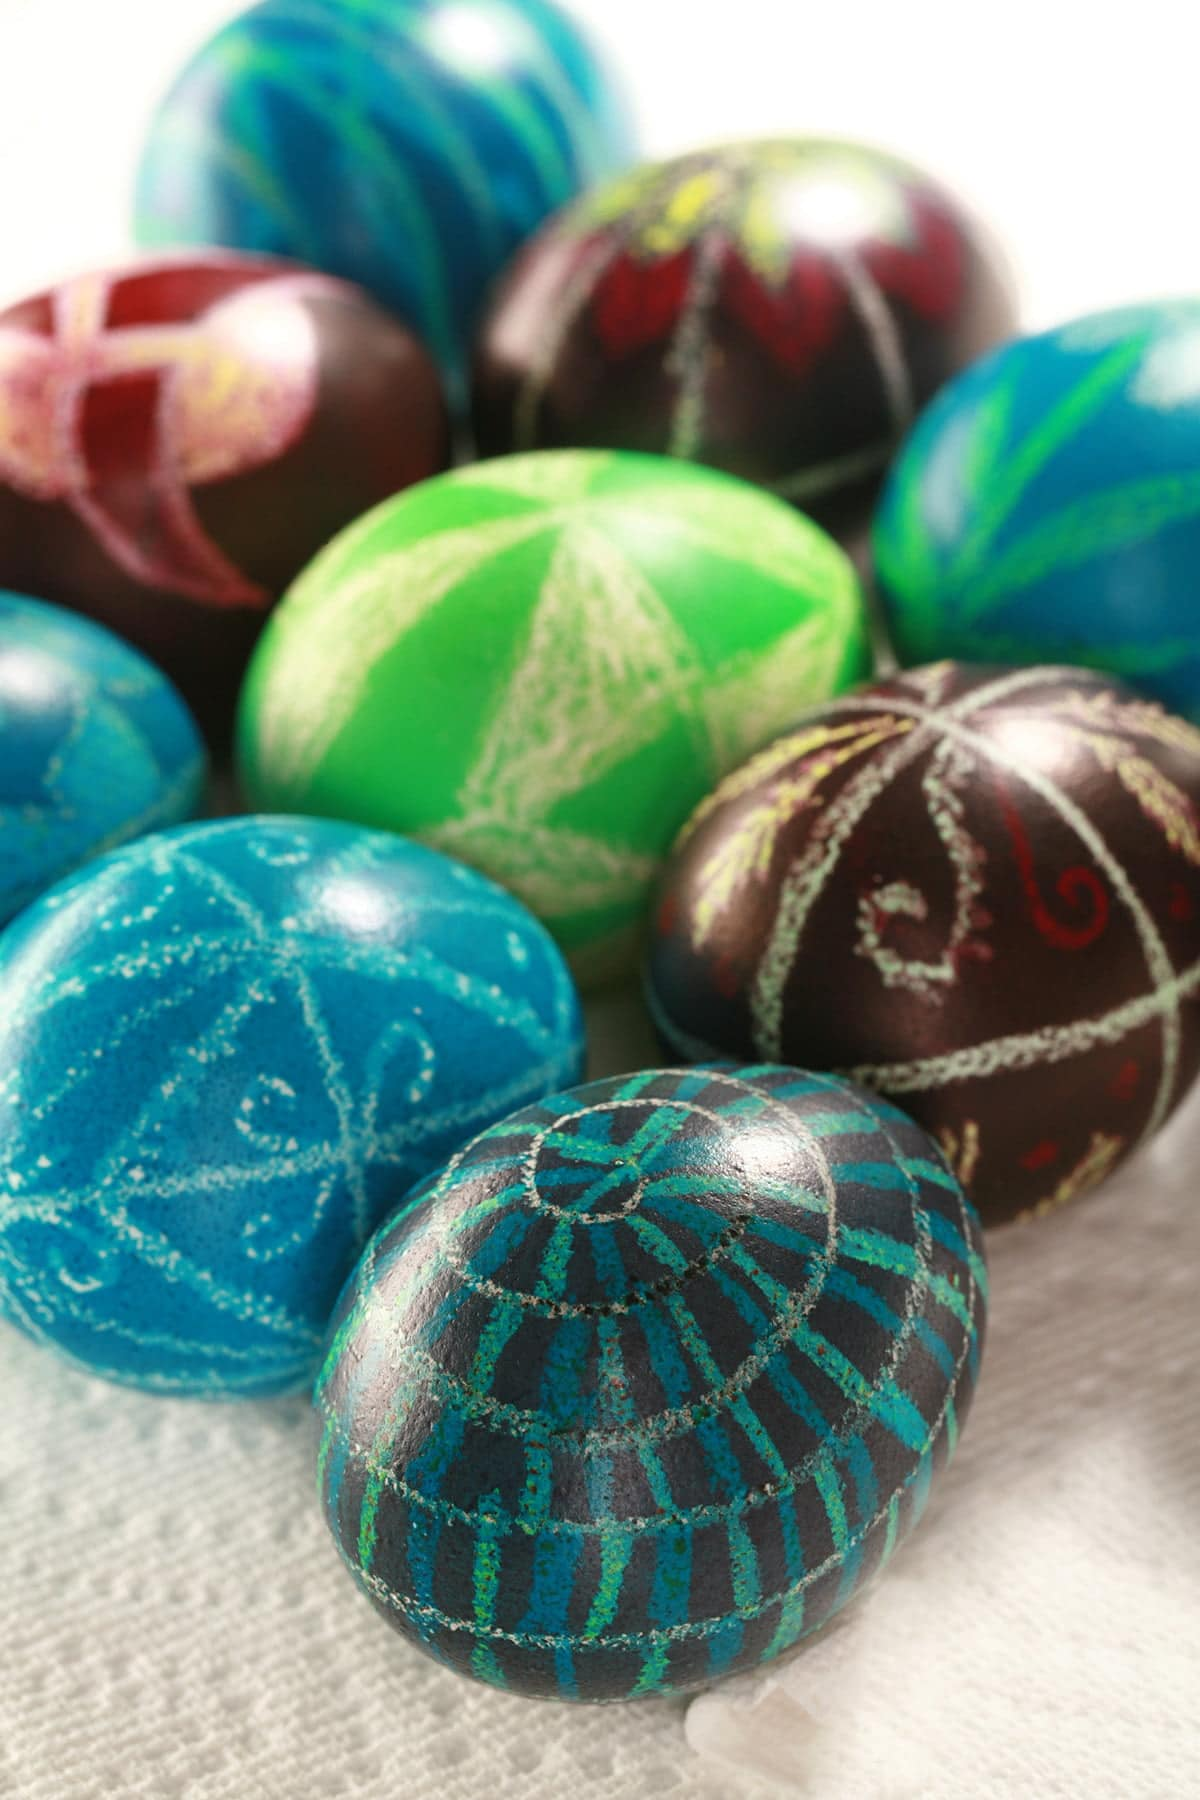 Several brightly coloured batik dyed easy pysanky easter eggs, on a white background.